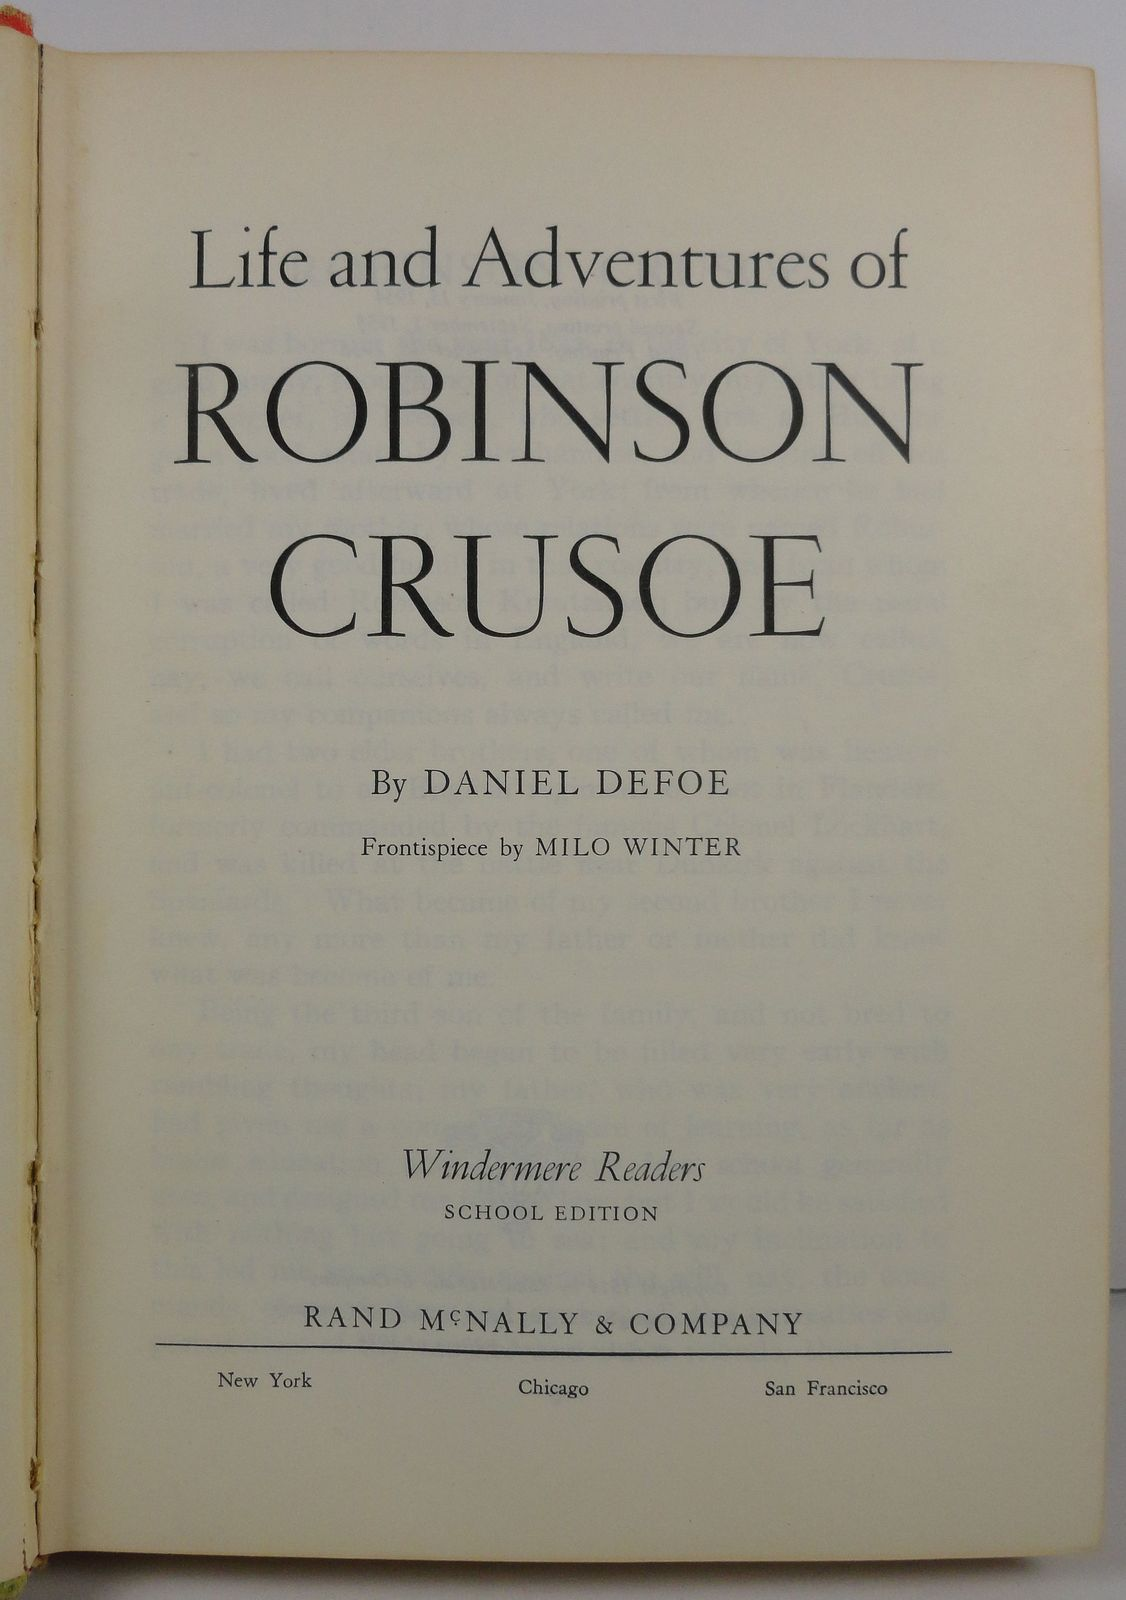 Robinson Crusoe by Daniel Defoe 1956 Windermere Readers